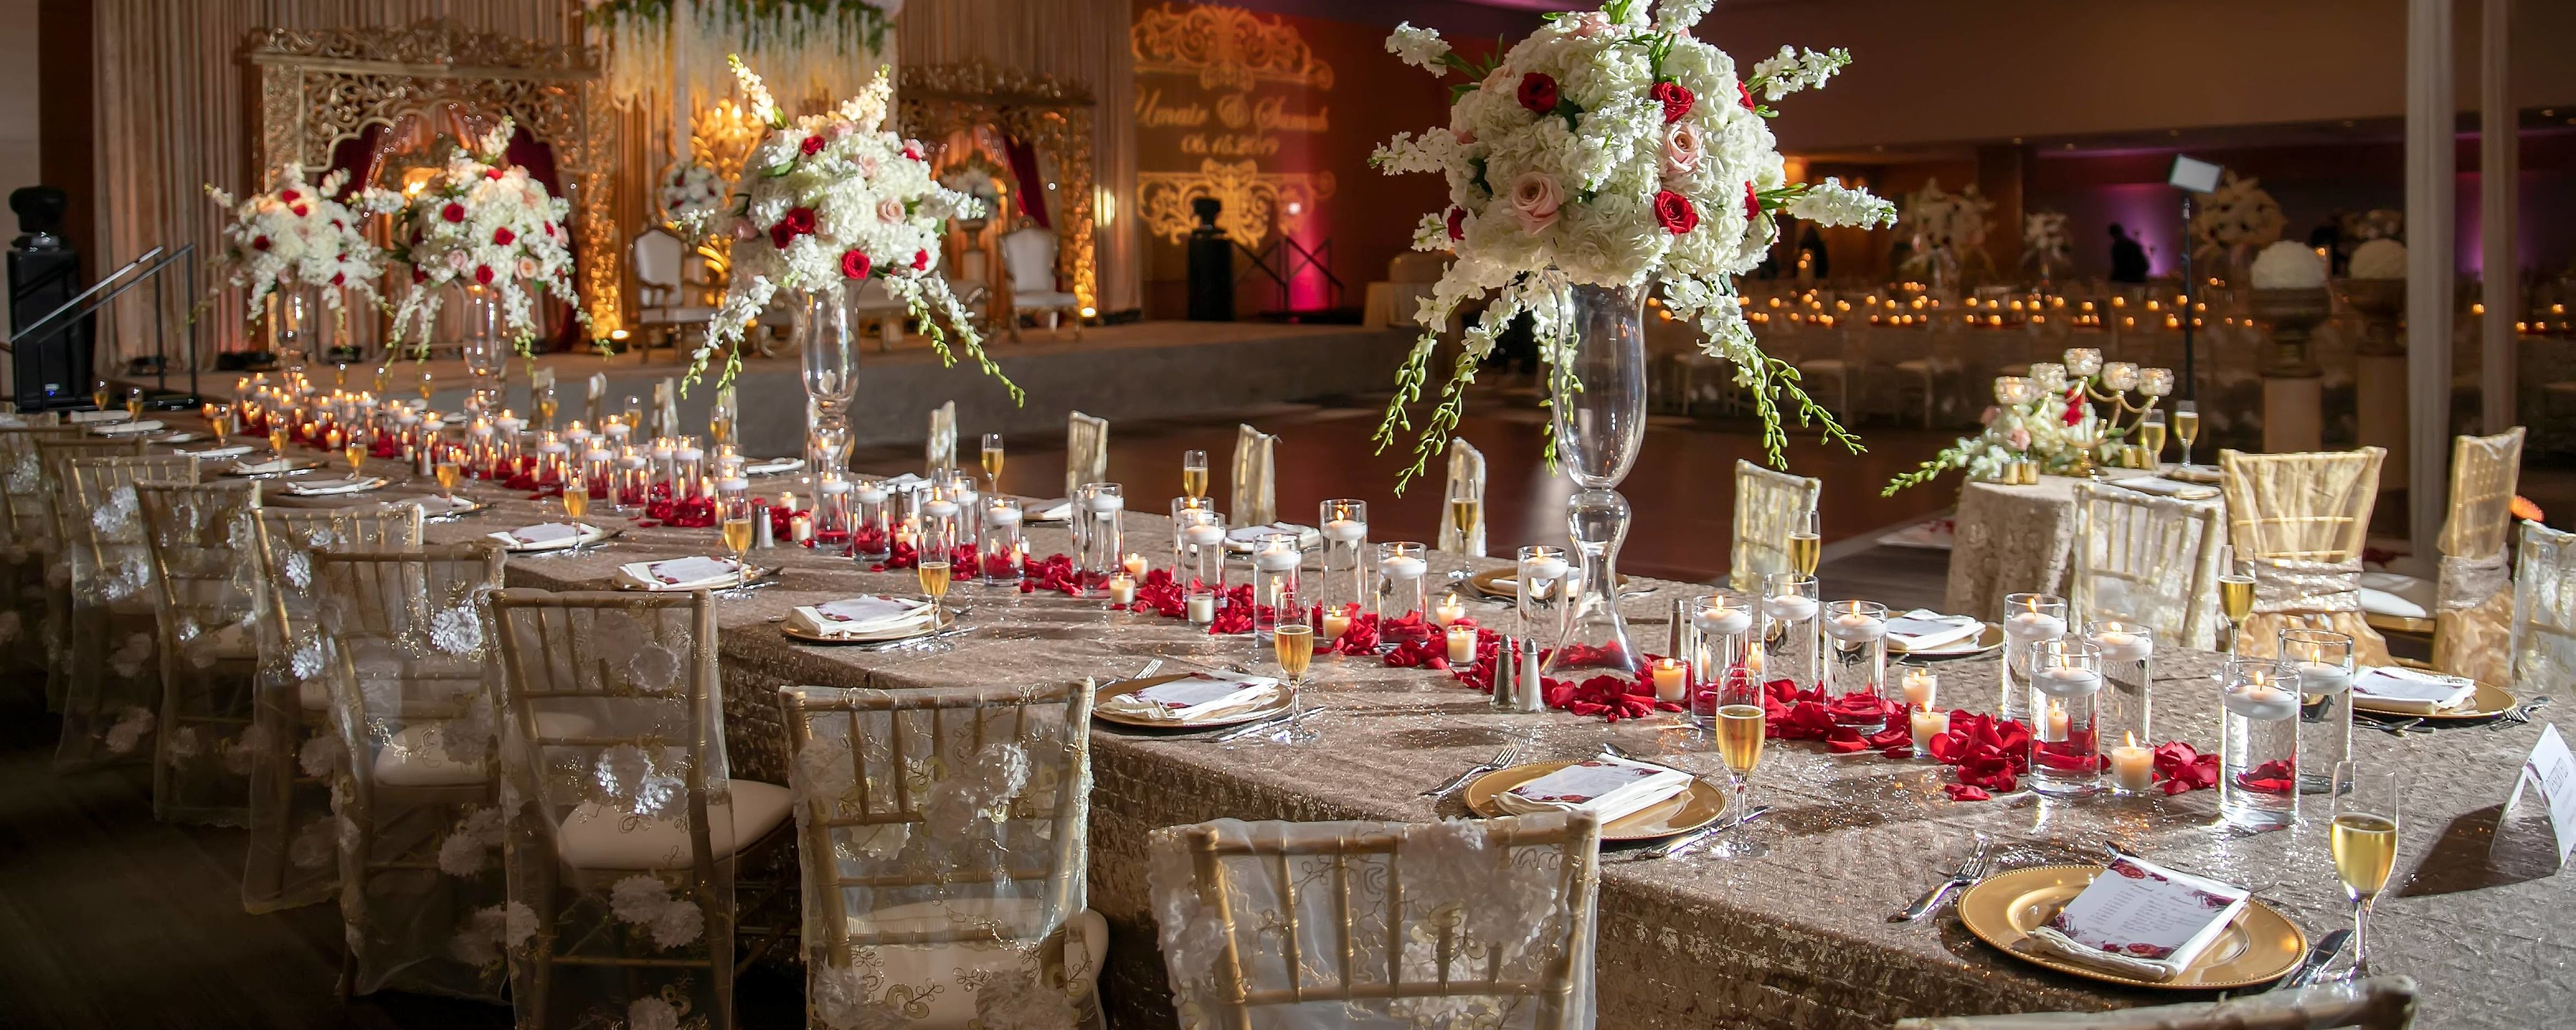 Large Wedding Venues In Atlanta Ga Atlanta Marriott Marquis